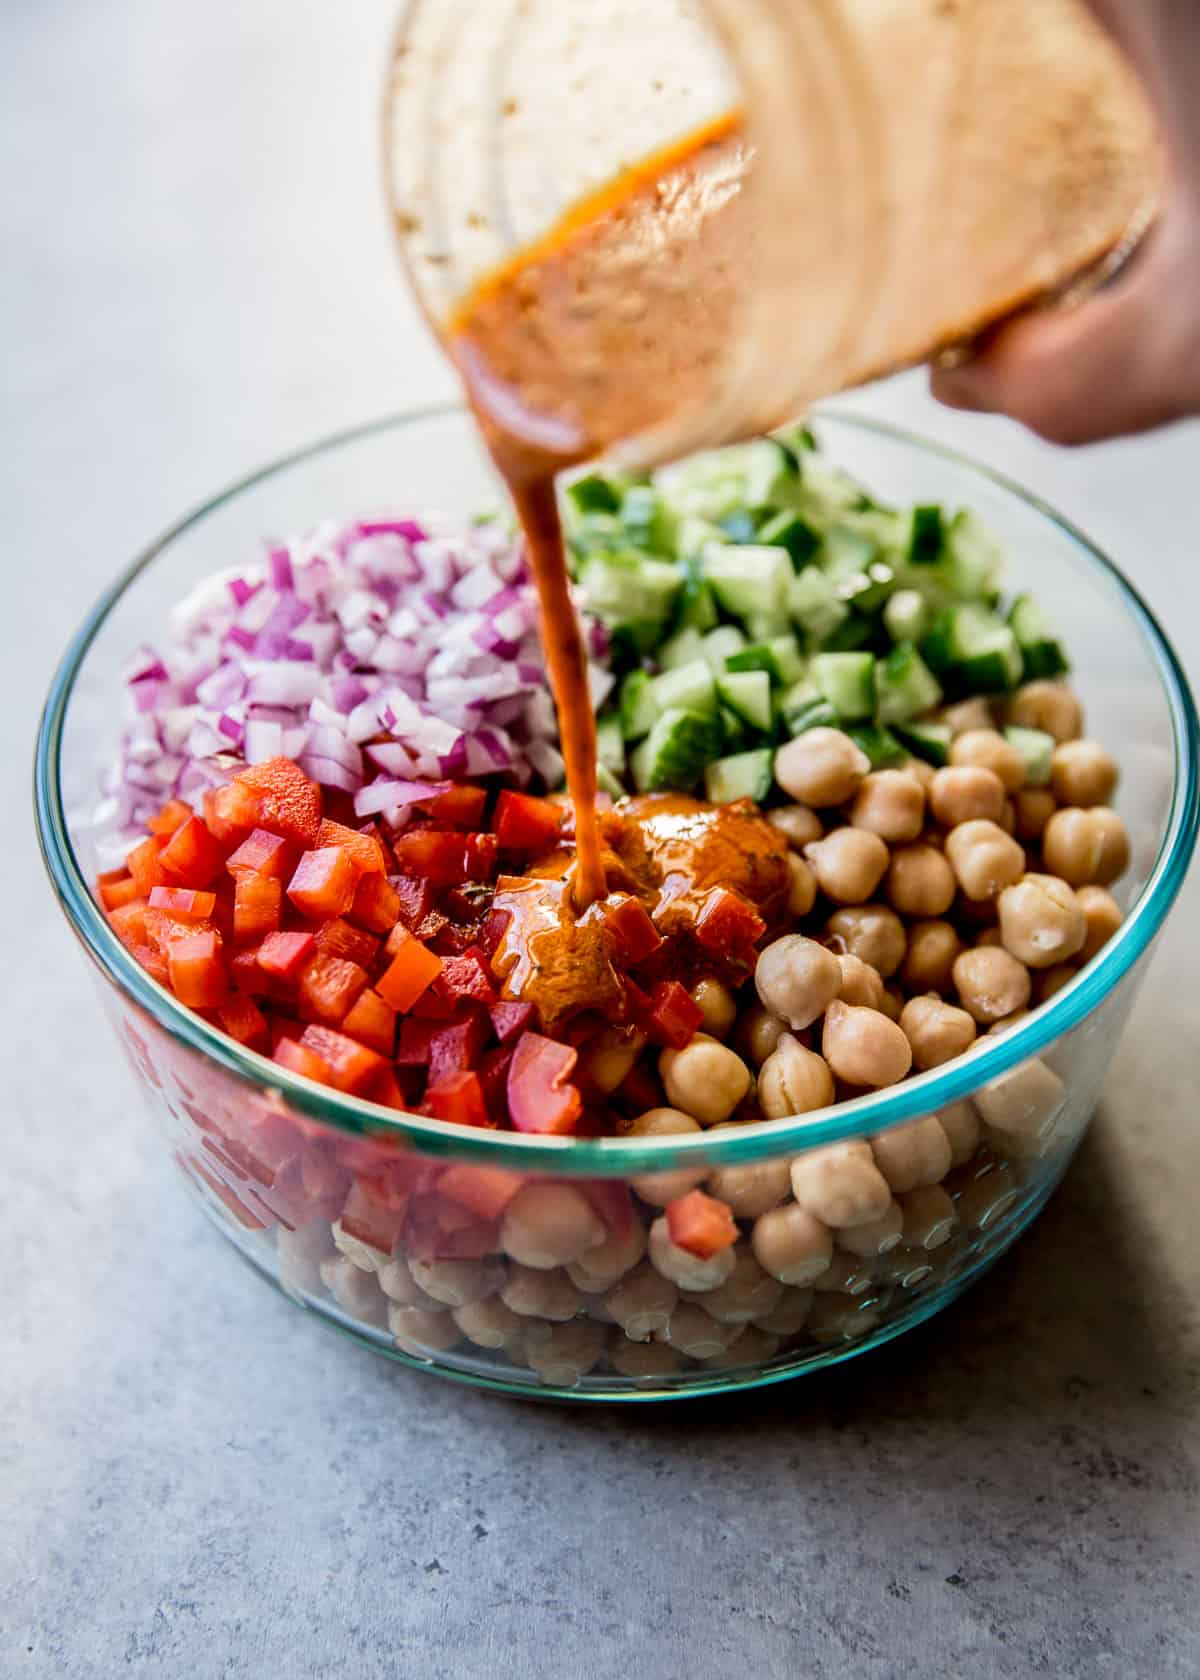 adding dressing to chickpeas and vegetables in a clear glass bowl